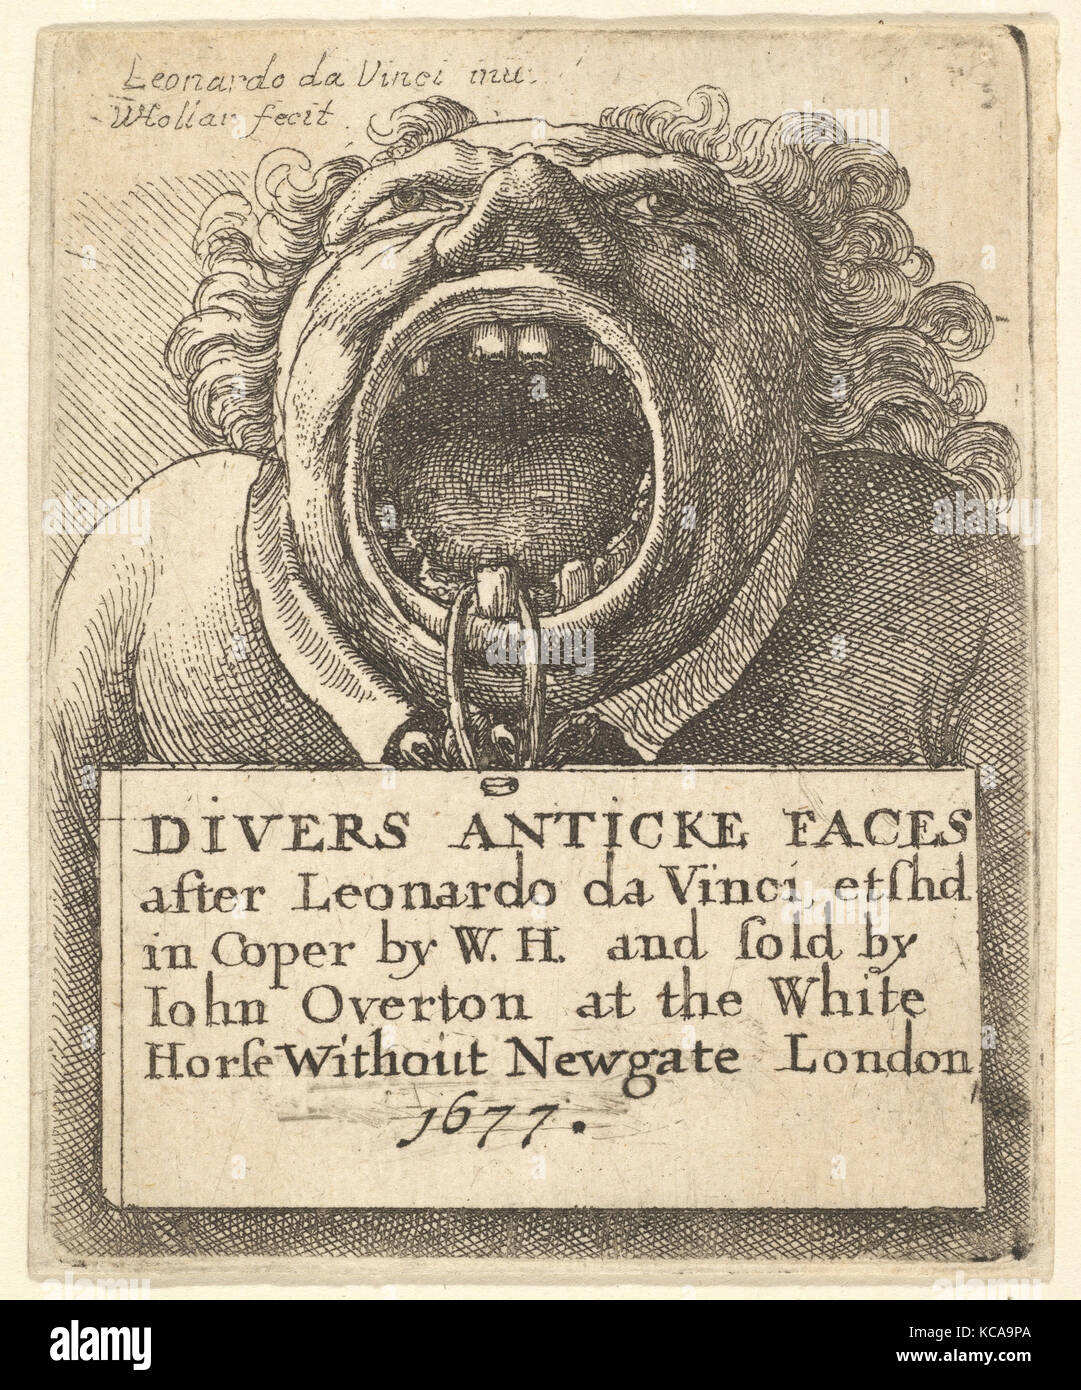 Title Page, Divers Anticke Faces, After Leonardo da Vinci, 1677